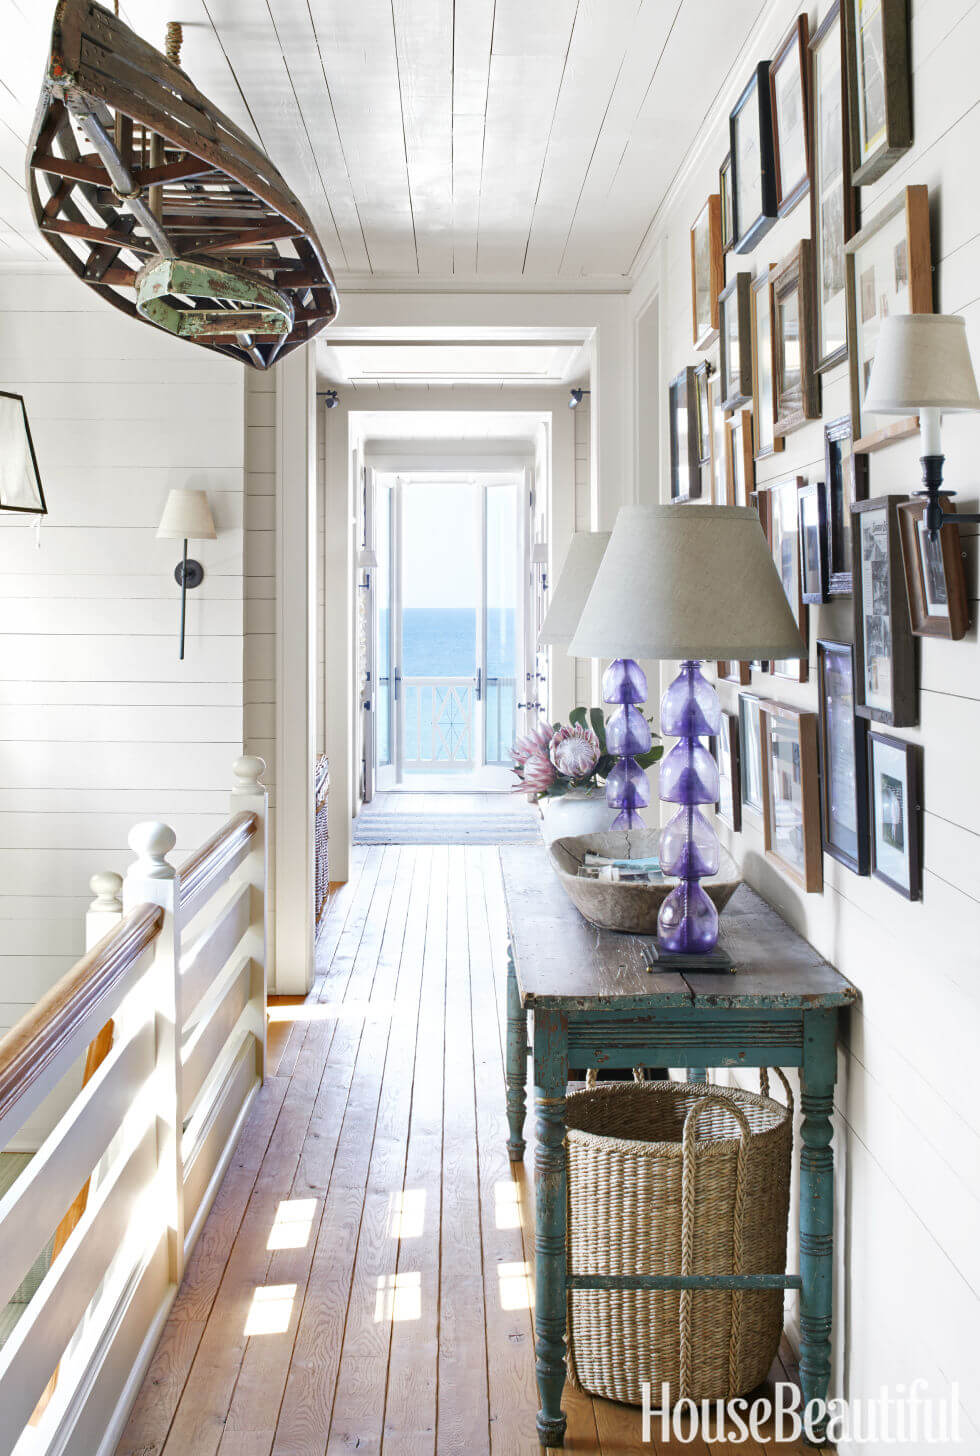 A Boardwalk-Inspired Hallway to a Balcony